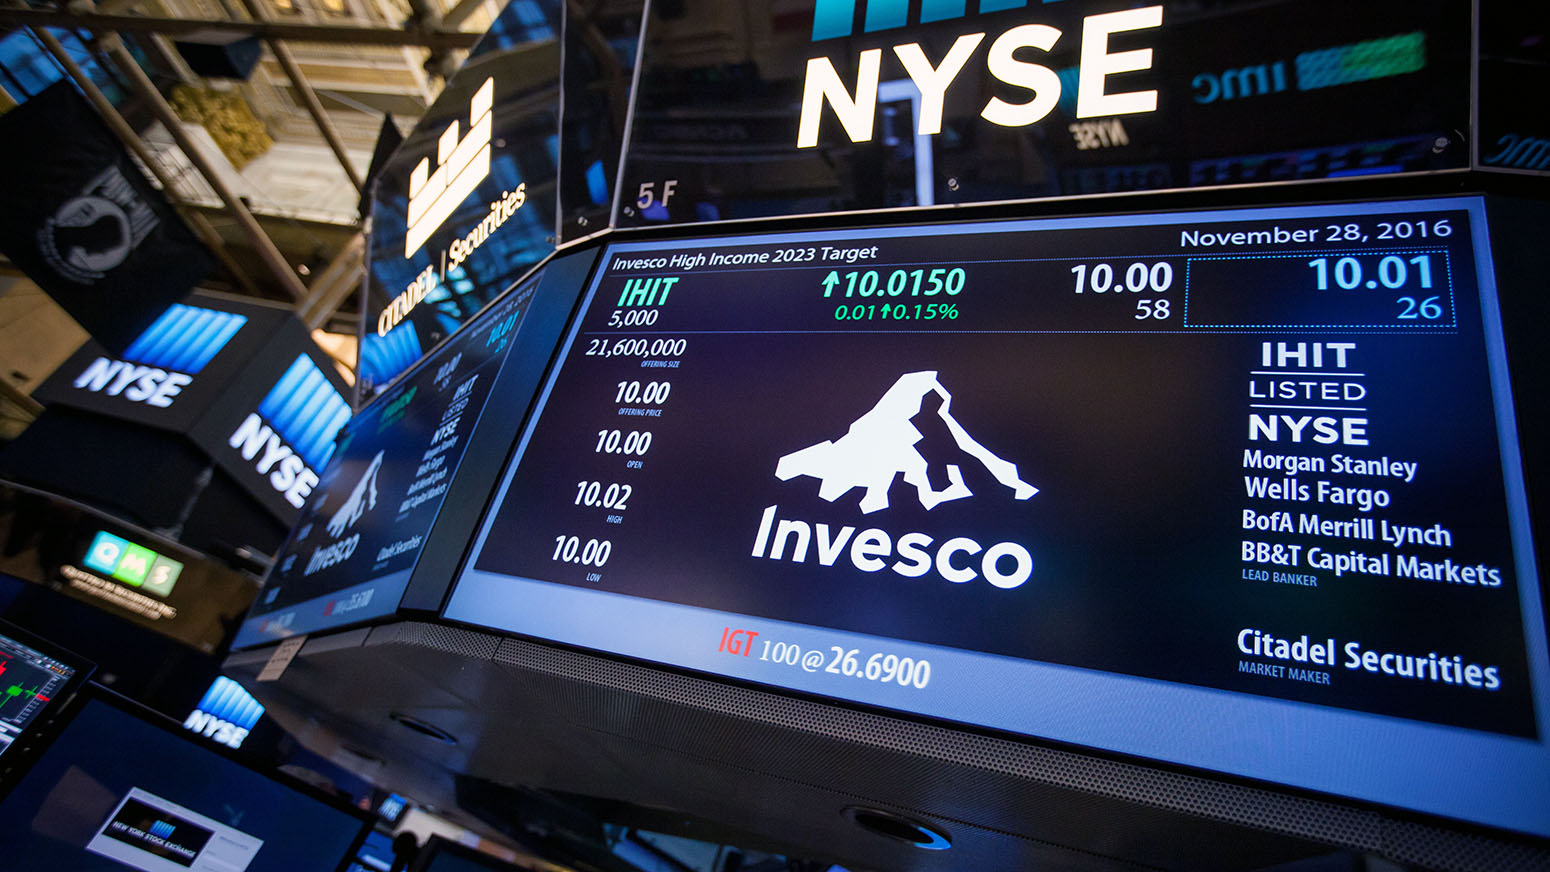 Invesco to cut 850 jobs at OppenheimerFunds after acquisition